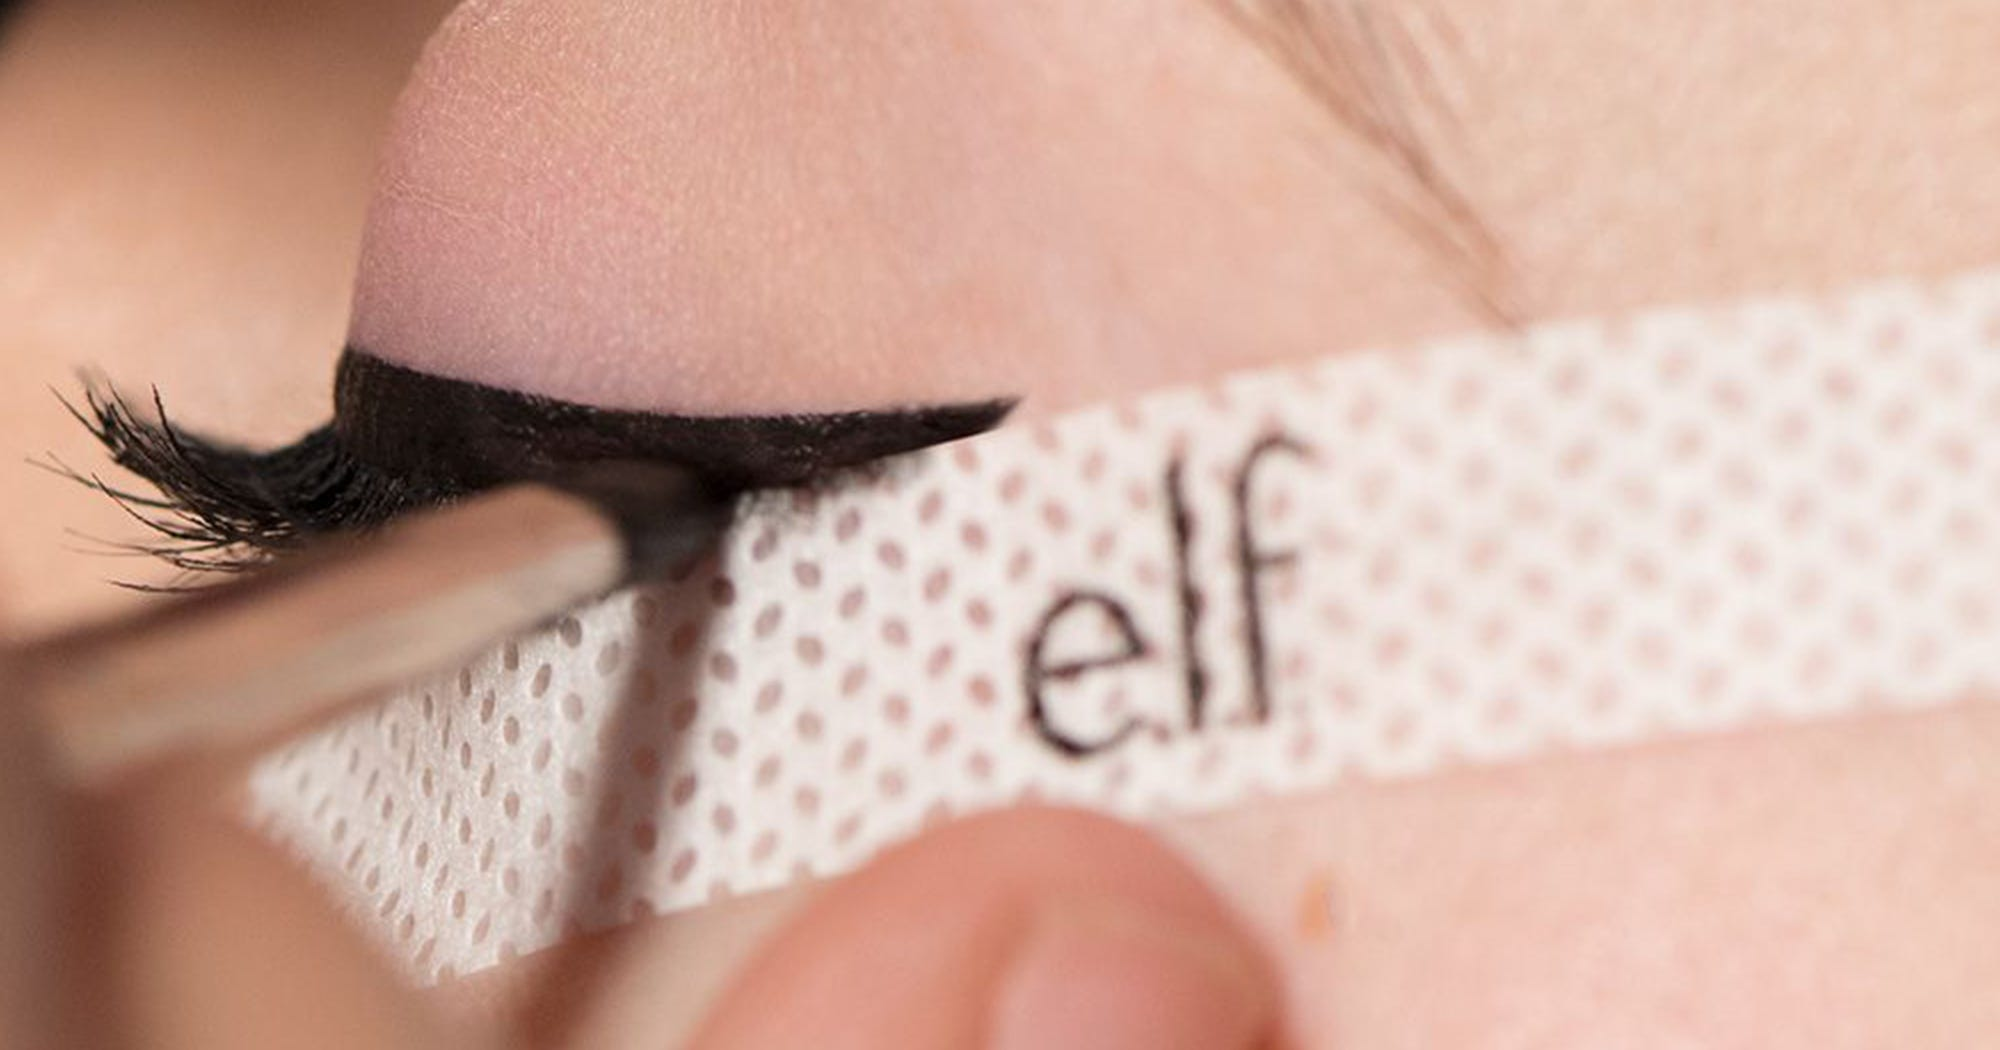 8 E.L.F. Cosmetics Products You Didn't Know Existed